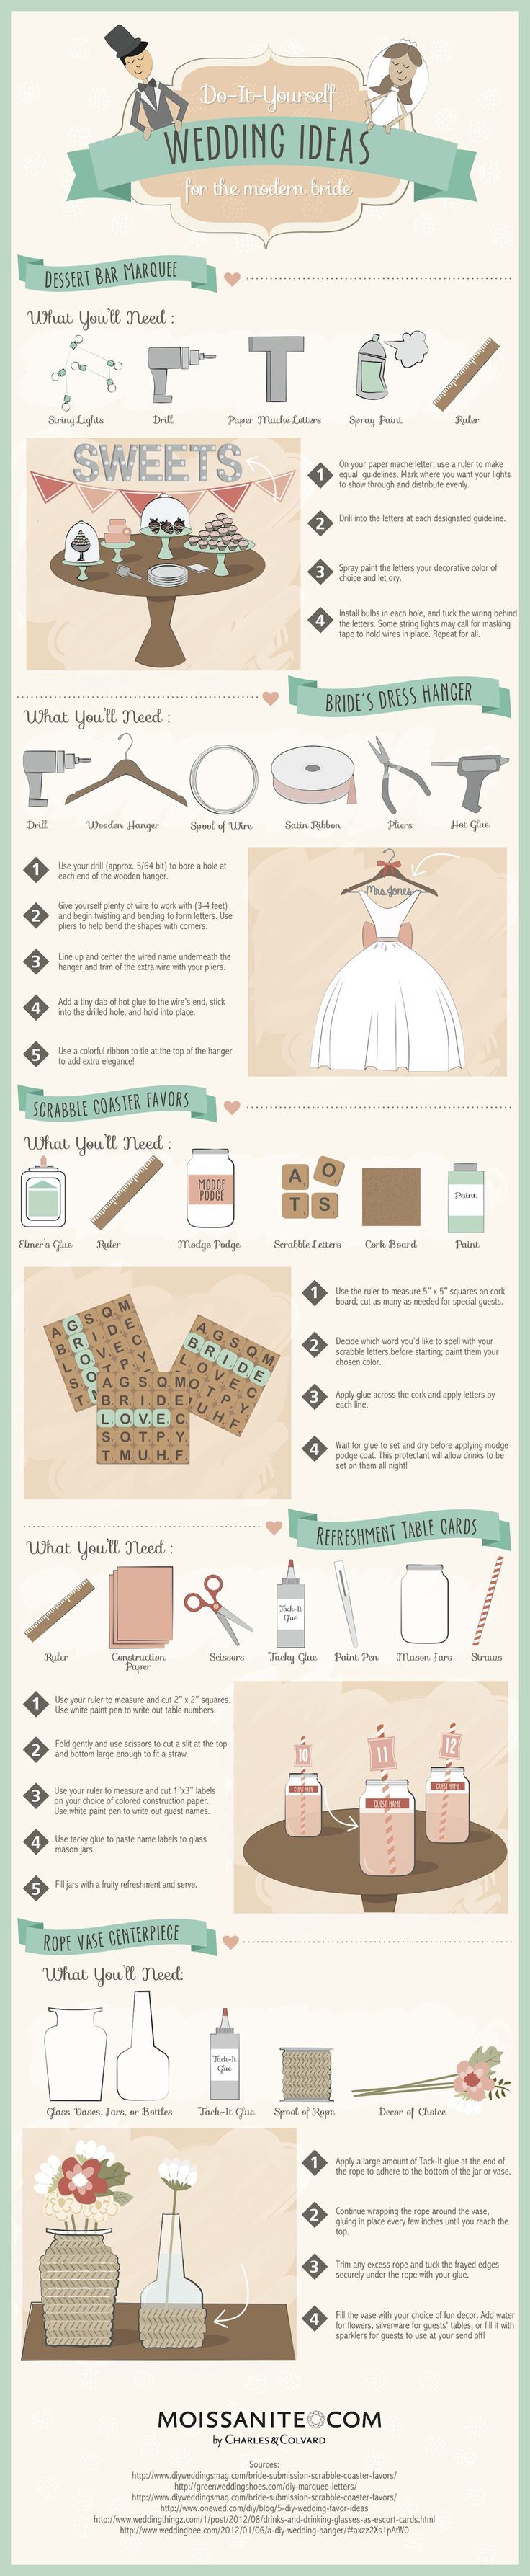 Check out this wedding infographic by Moissanite for some cute and creative money saving wedding ideas!